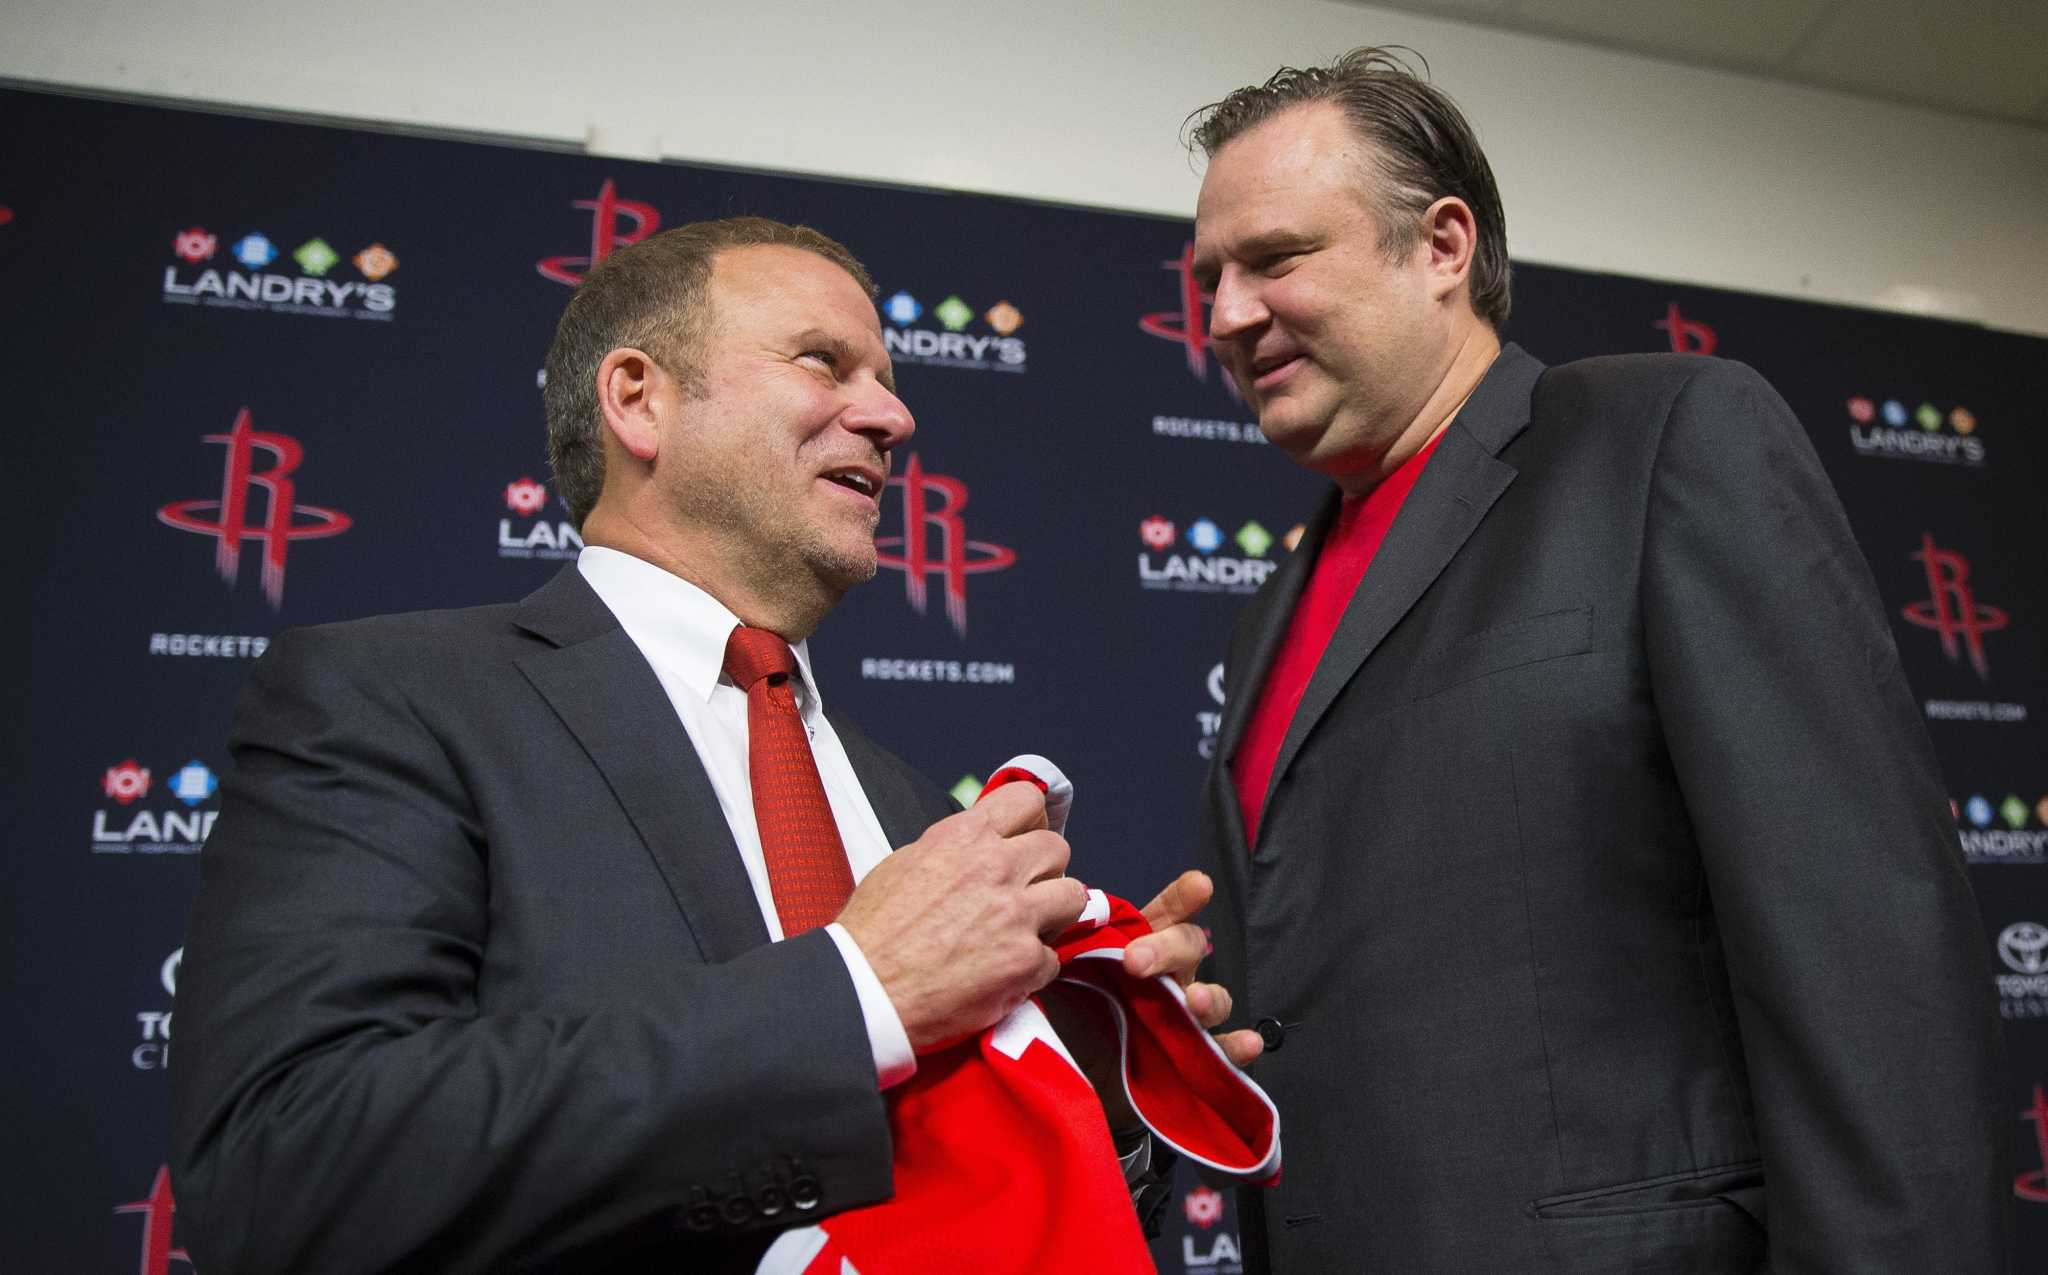 Smith: Daryl Morey's surprise exit makes Rockets' task even tougher